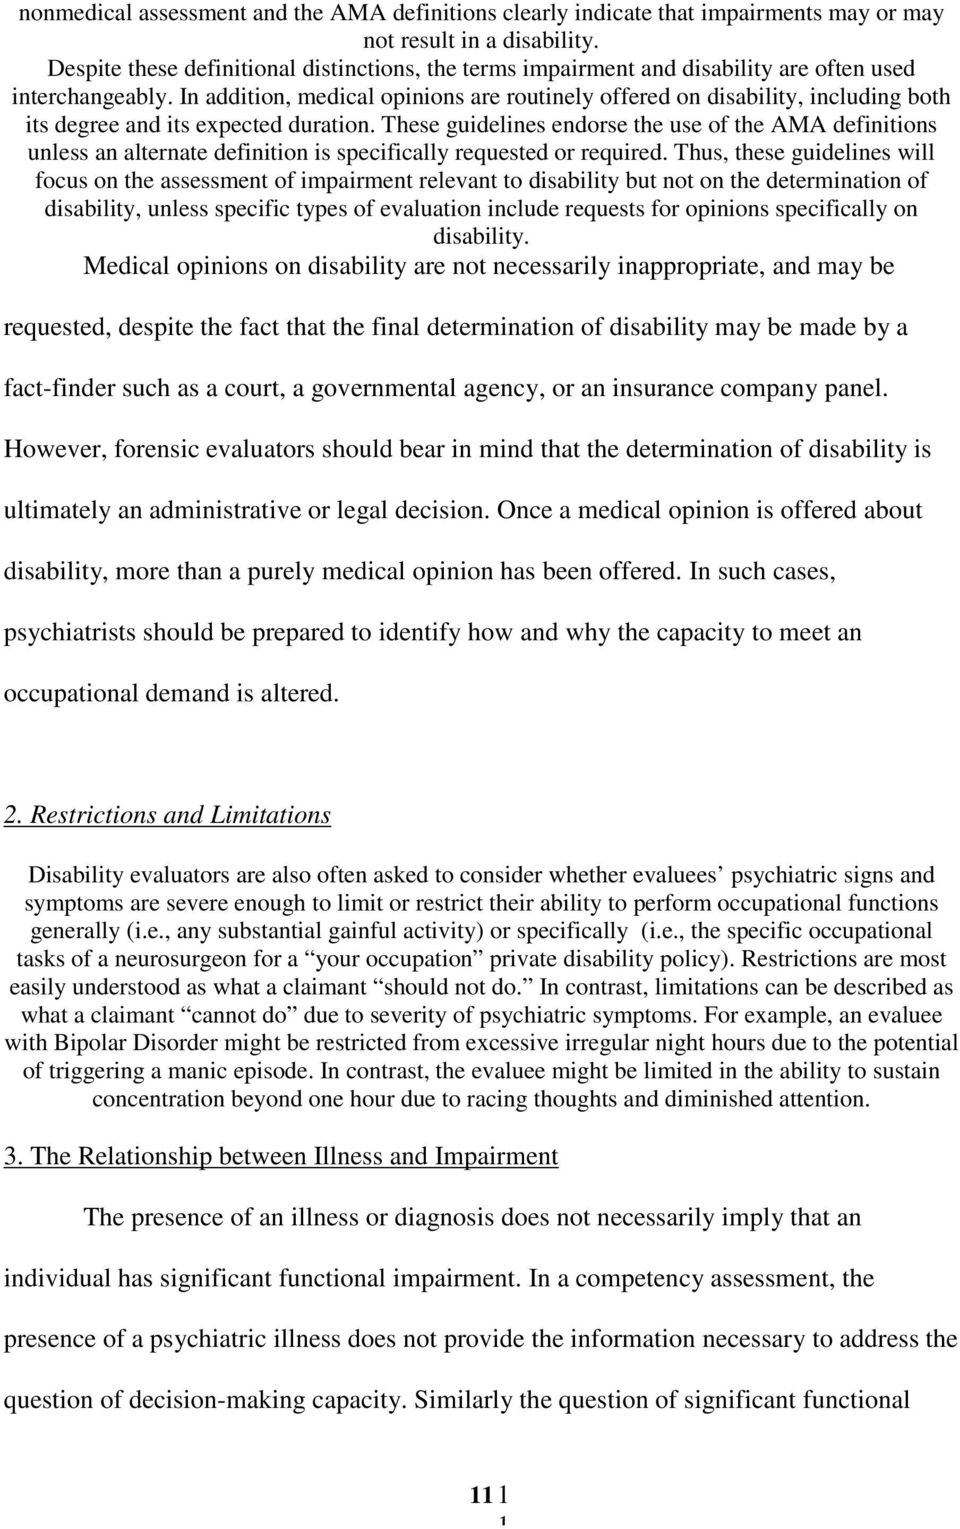 In addition, medical opinions are routinely offered on disability, including both its degree and its expected duration.